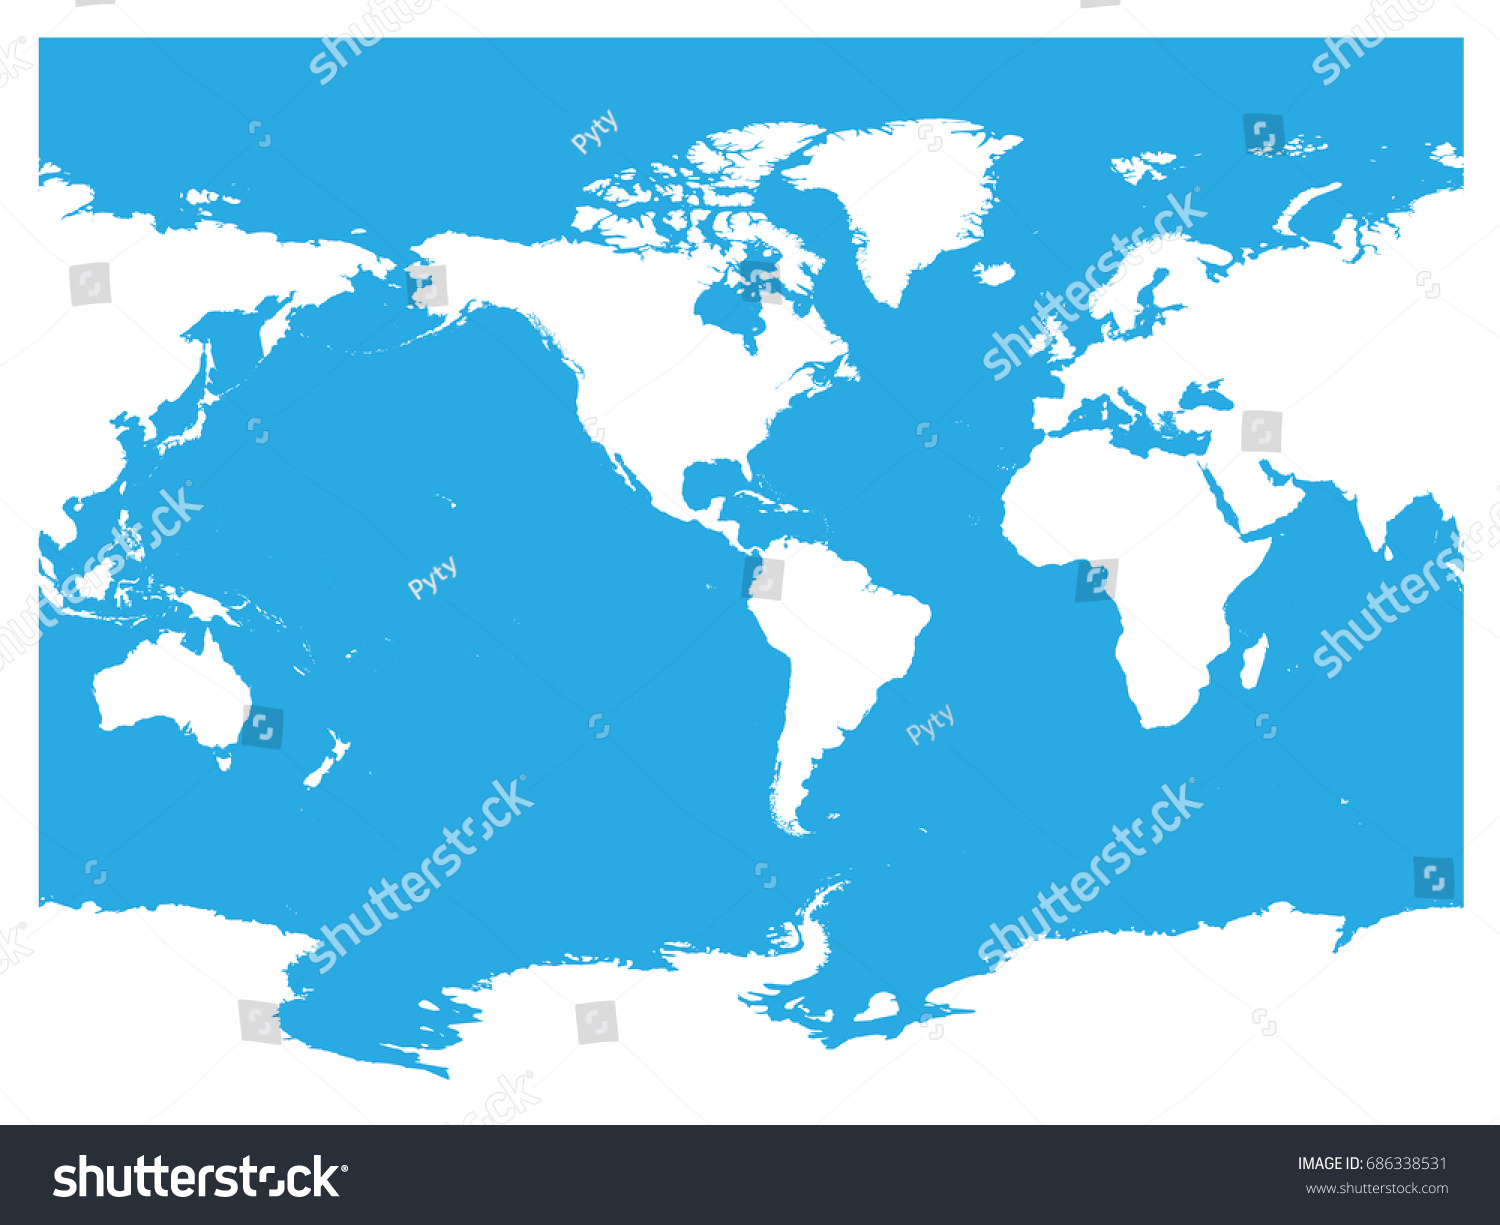 Australia pacific ocean centered world map vectores en stock australia and pacific ocean centered world map high detail white silhouette on blue background gumiabroncs Images